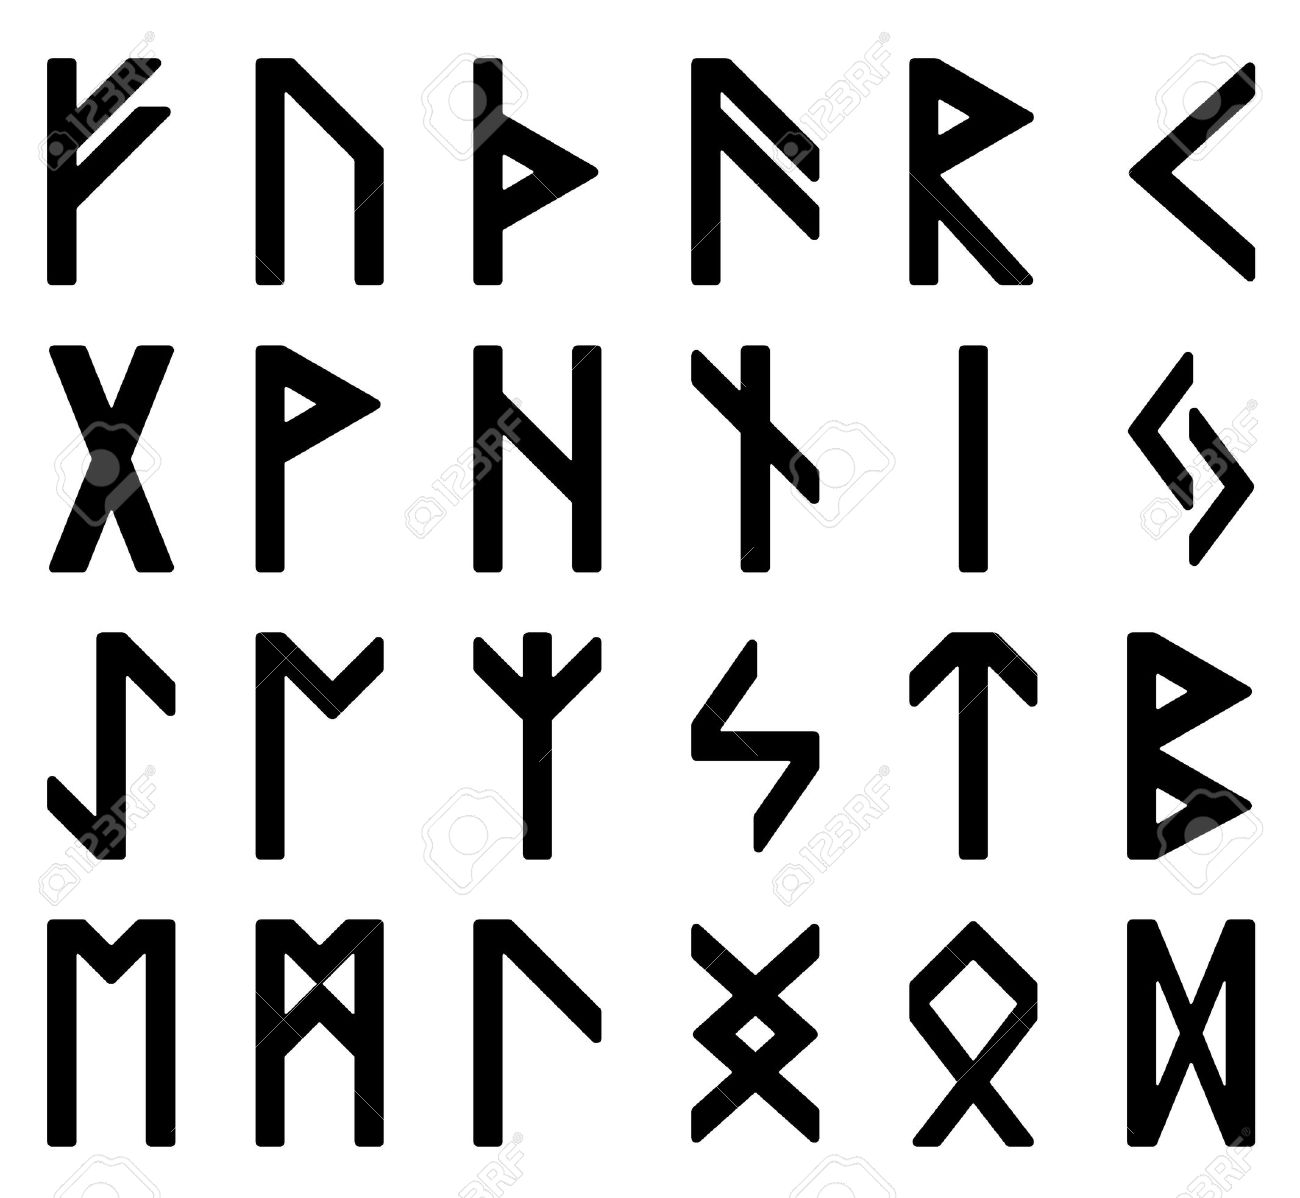 Symbols Magic Runes Witchcraft Signs Stock Photo Picture And